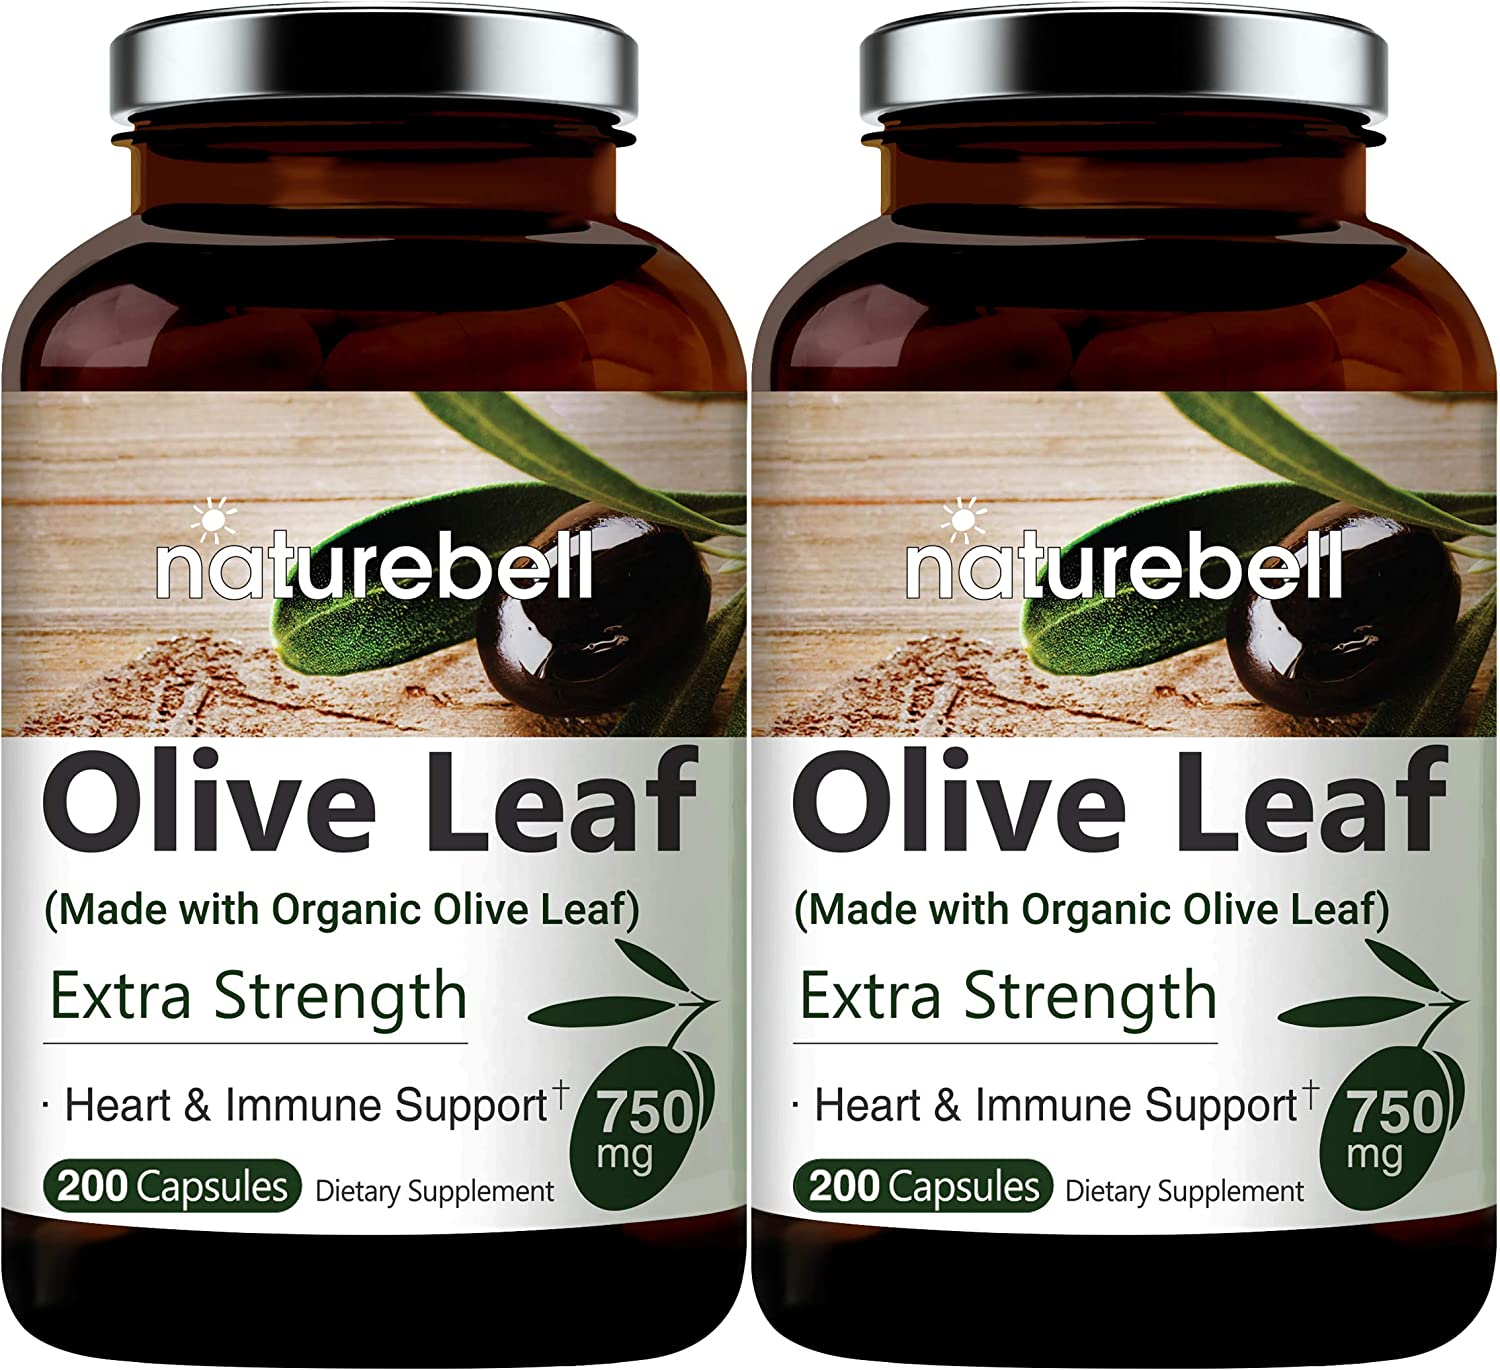 Made with Organic Olive Leaf Extract 750mg, 200 Capsules, Active Polyphenols and Oleuropei, Supports Immune System and Cardiovascular Health, Non-GMO, Made in USA (2 Pack)